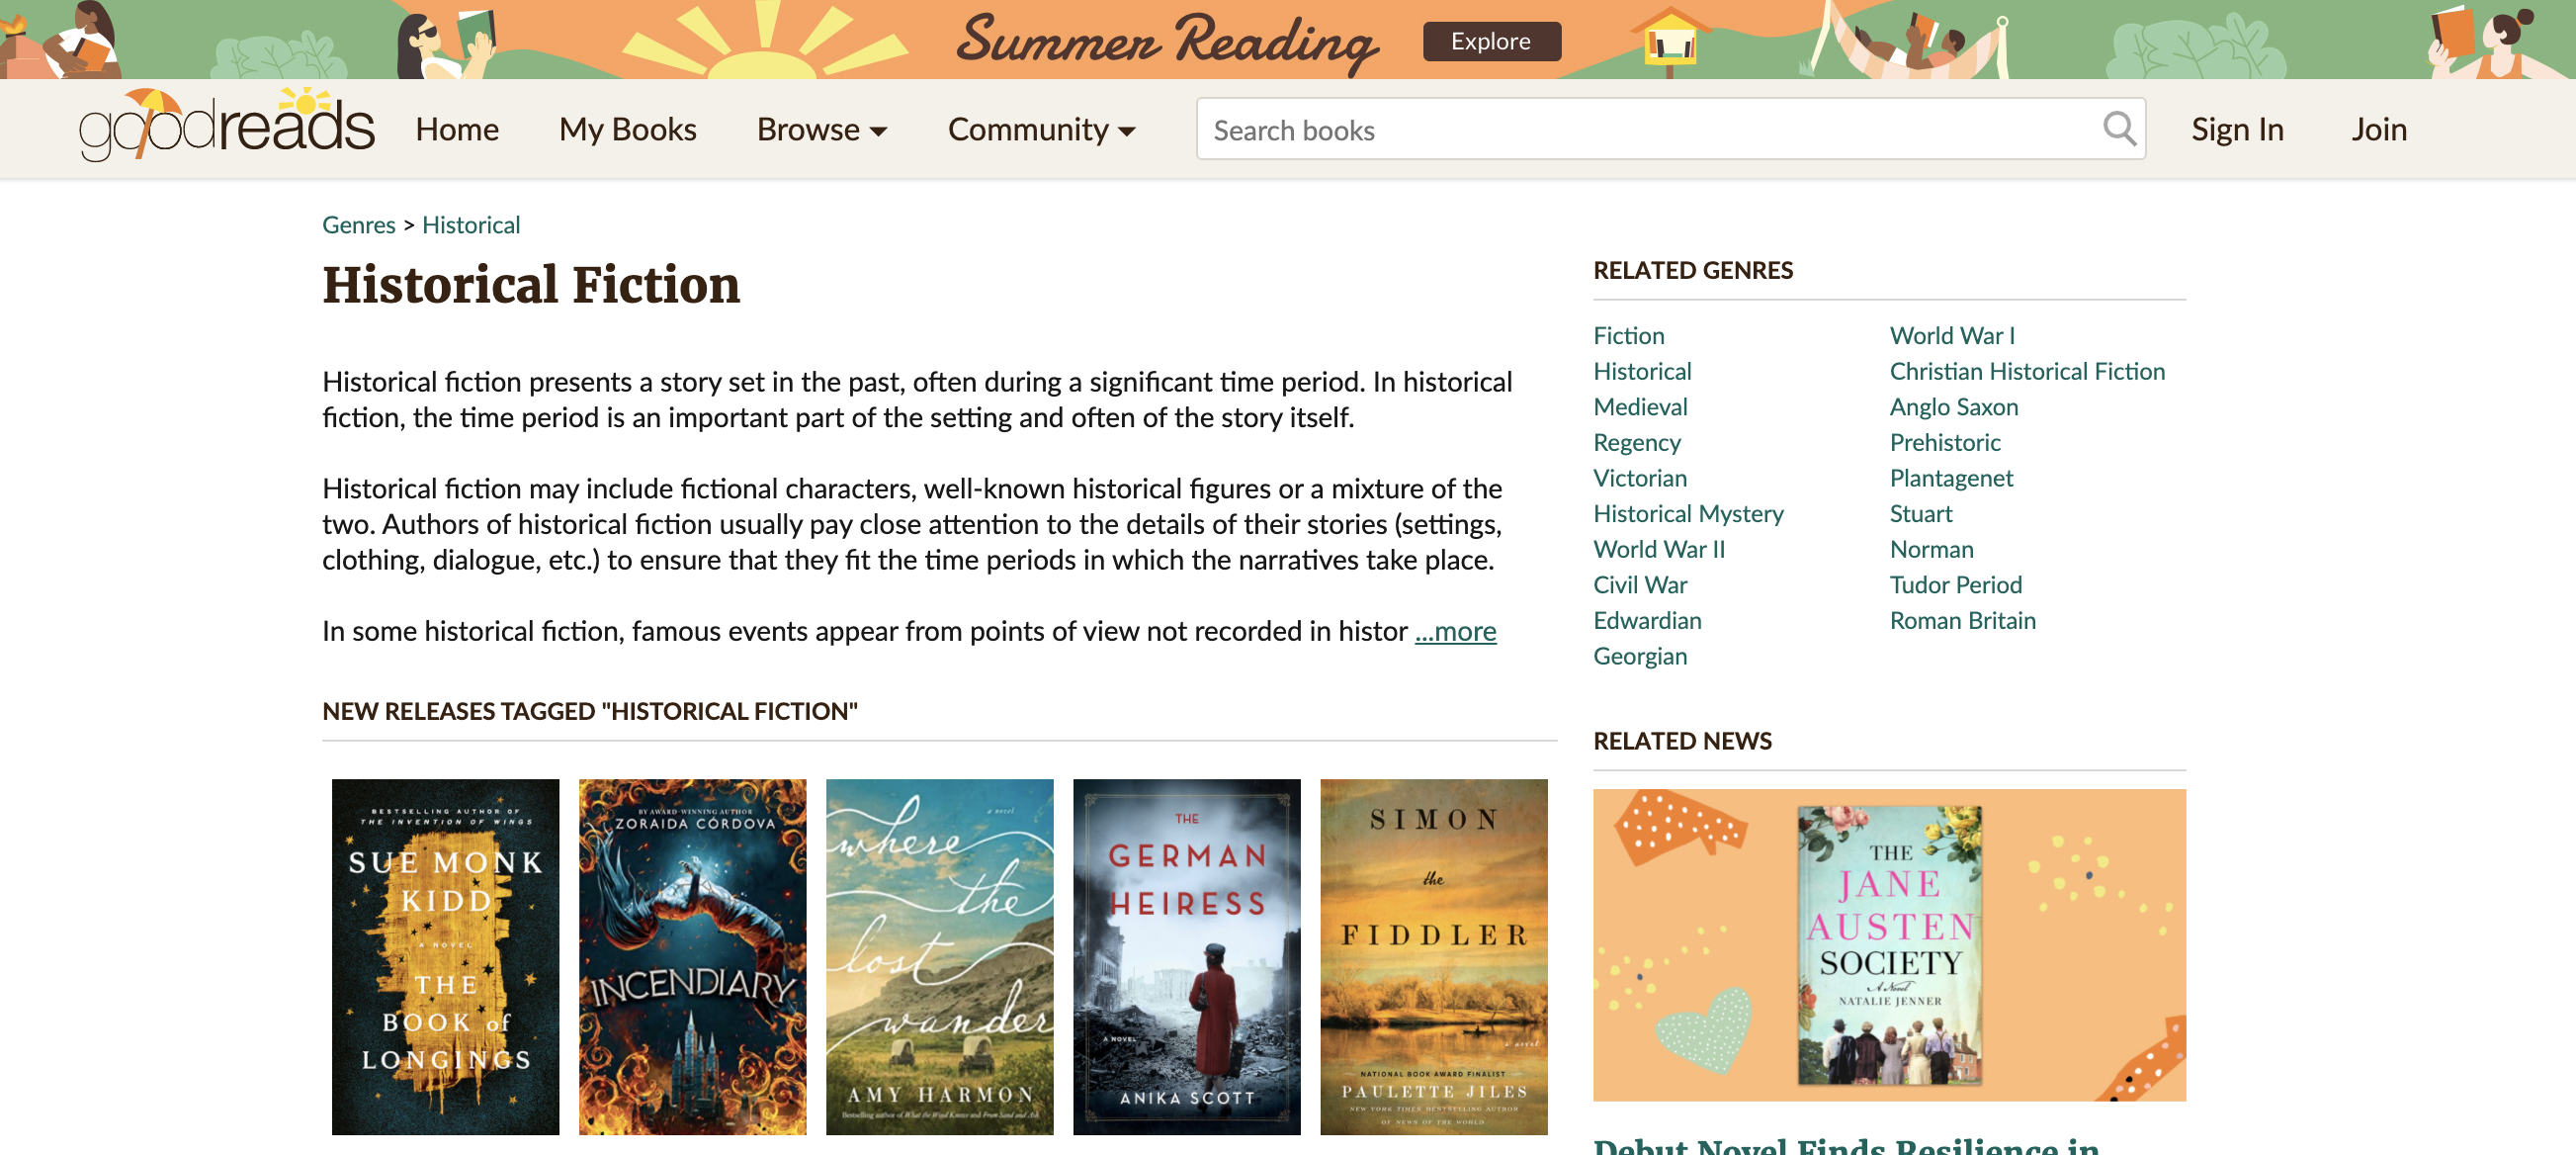 A screenshot showing a search page on the Goodreads website with results for historical fiction listed.